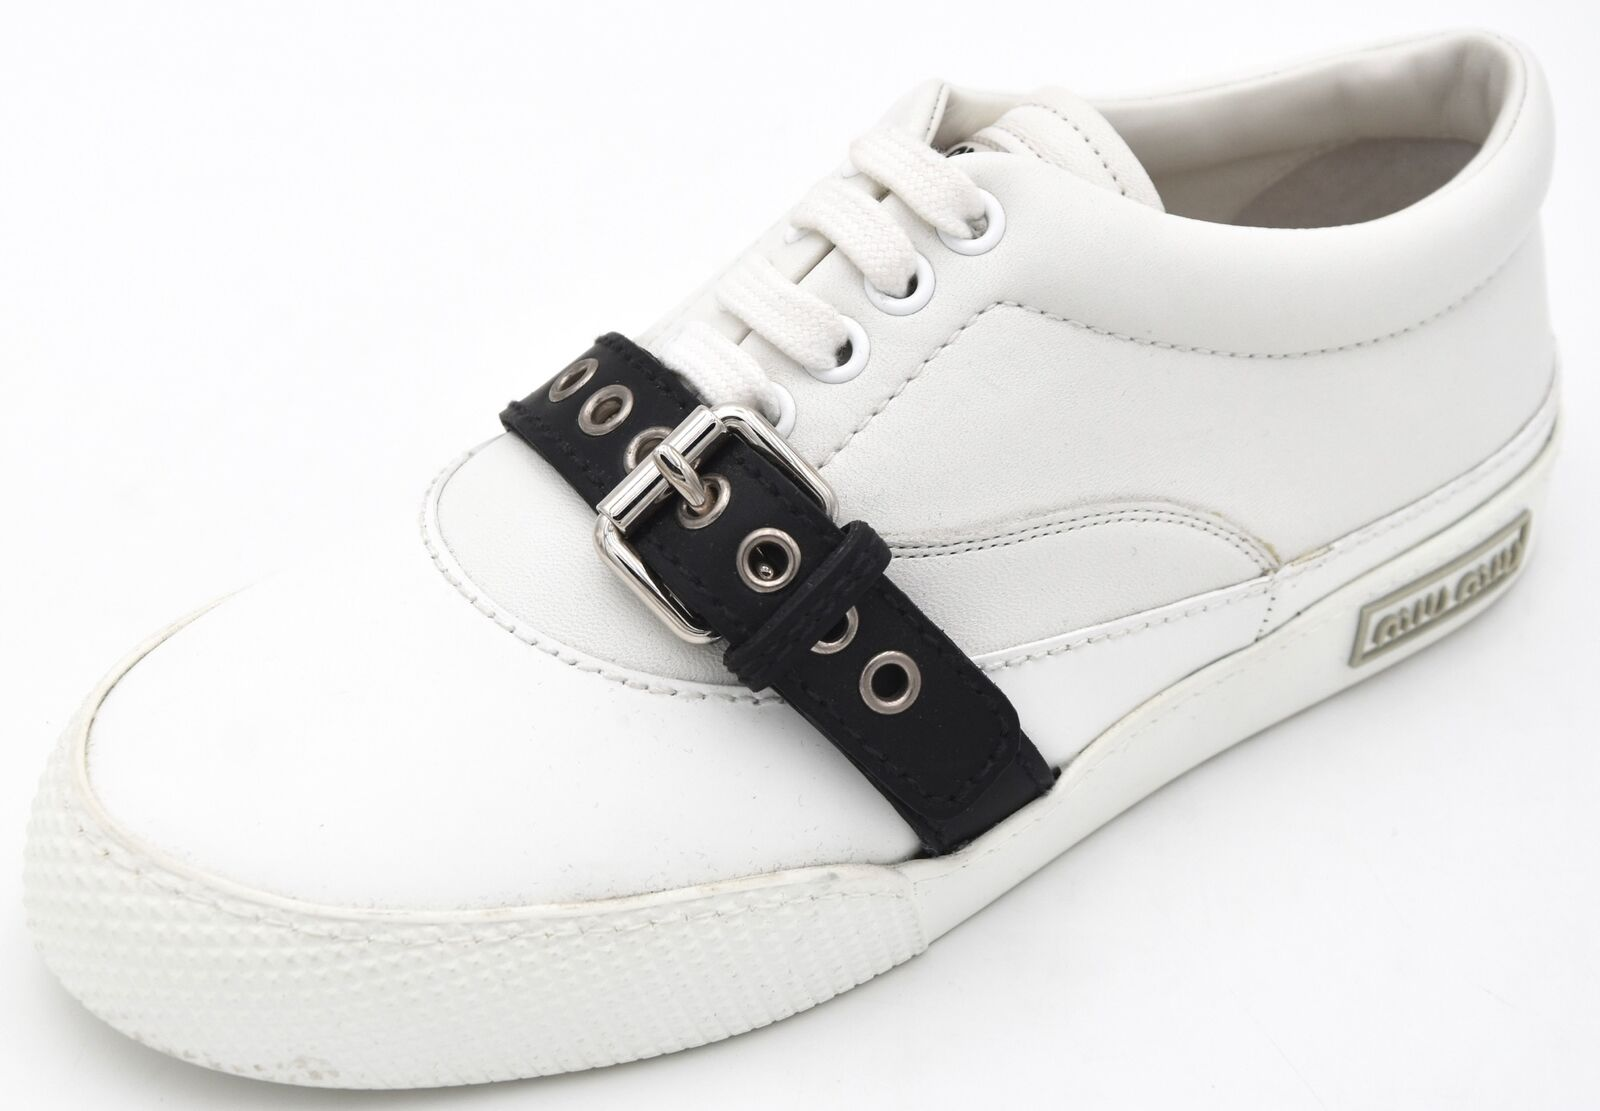 MIU MIU WOMAN baskets chaussures CASUAL FREE TIME LEATHER CODE 5E924A